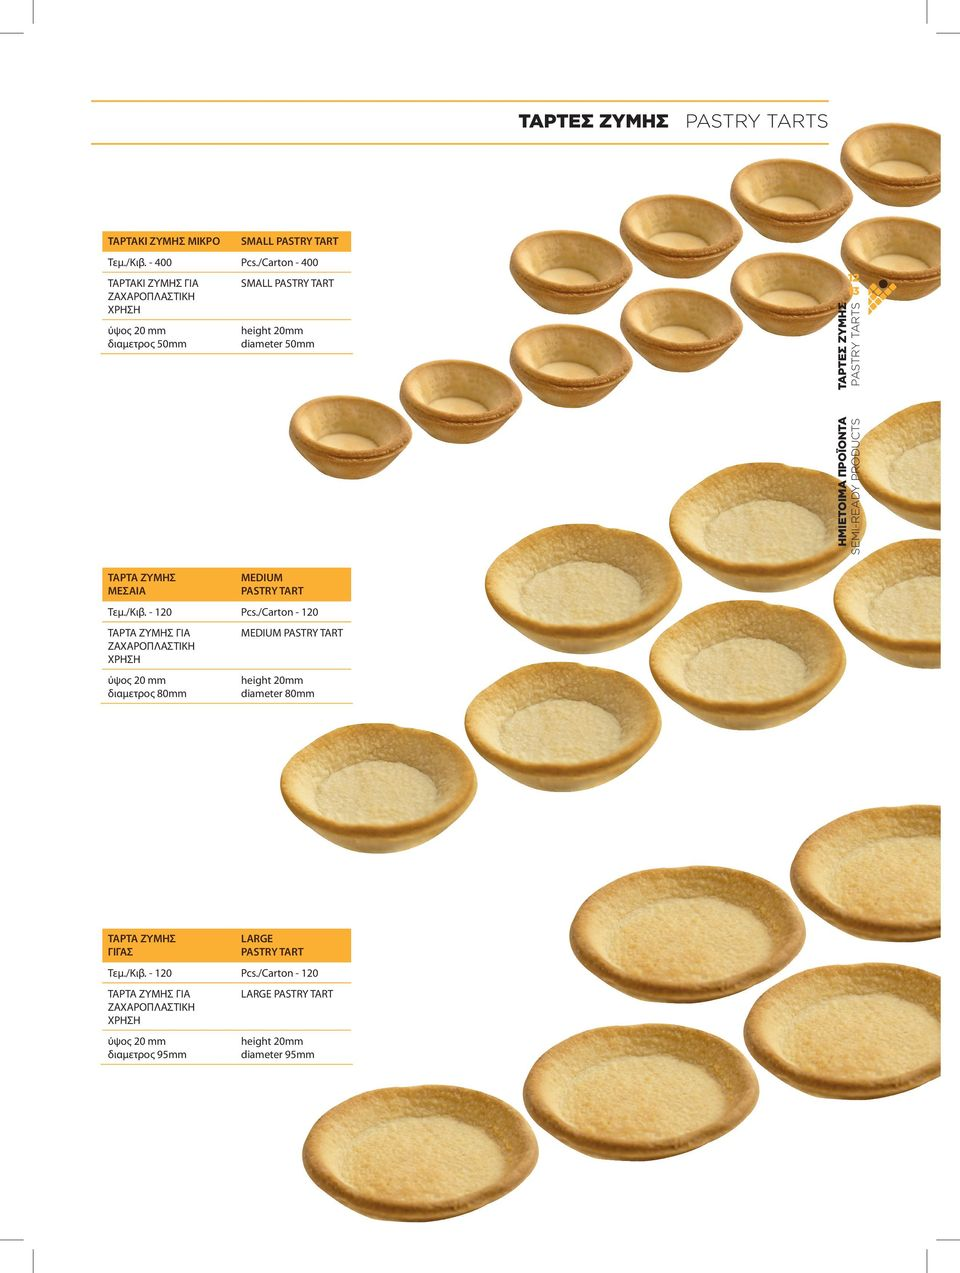 SEMI-READY PRODUCTS PASTRY TARTS ΤΑΡΤΑ ΖΥΜΗΣ ΜΕΣΑΙΑ MEDIUM PASTRY TART Τεμ./Κιβ. - 120 Pcs.